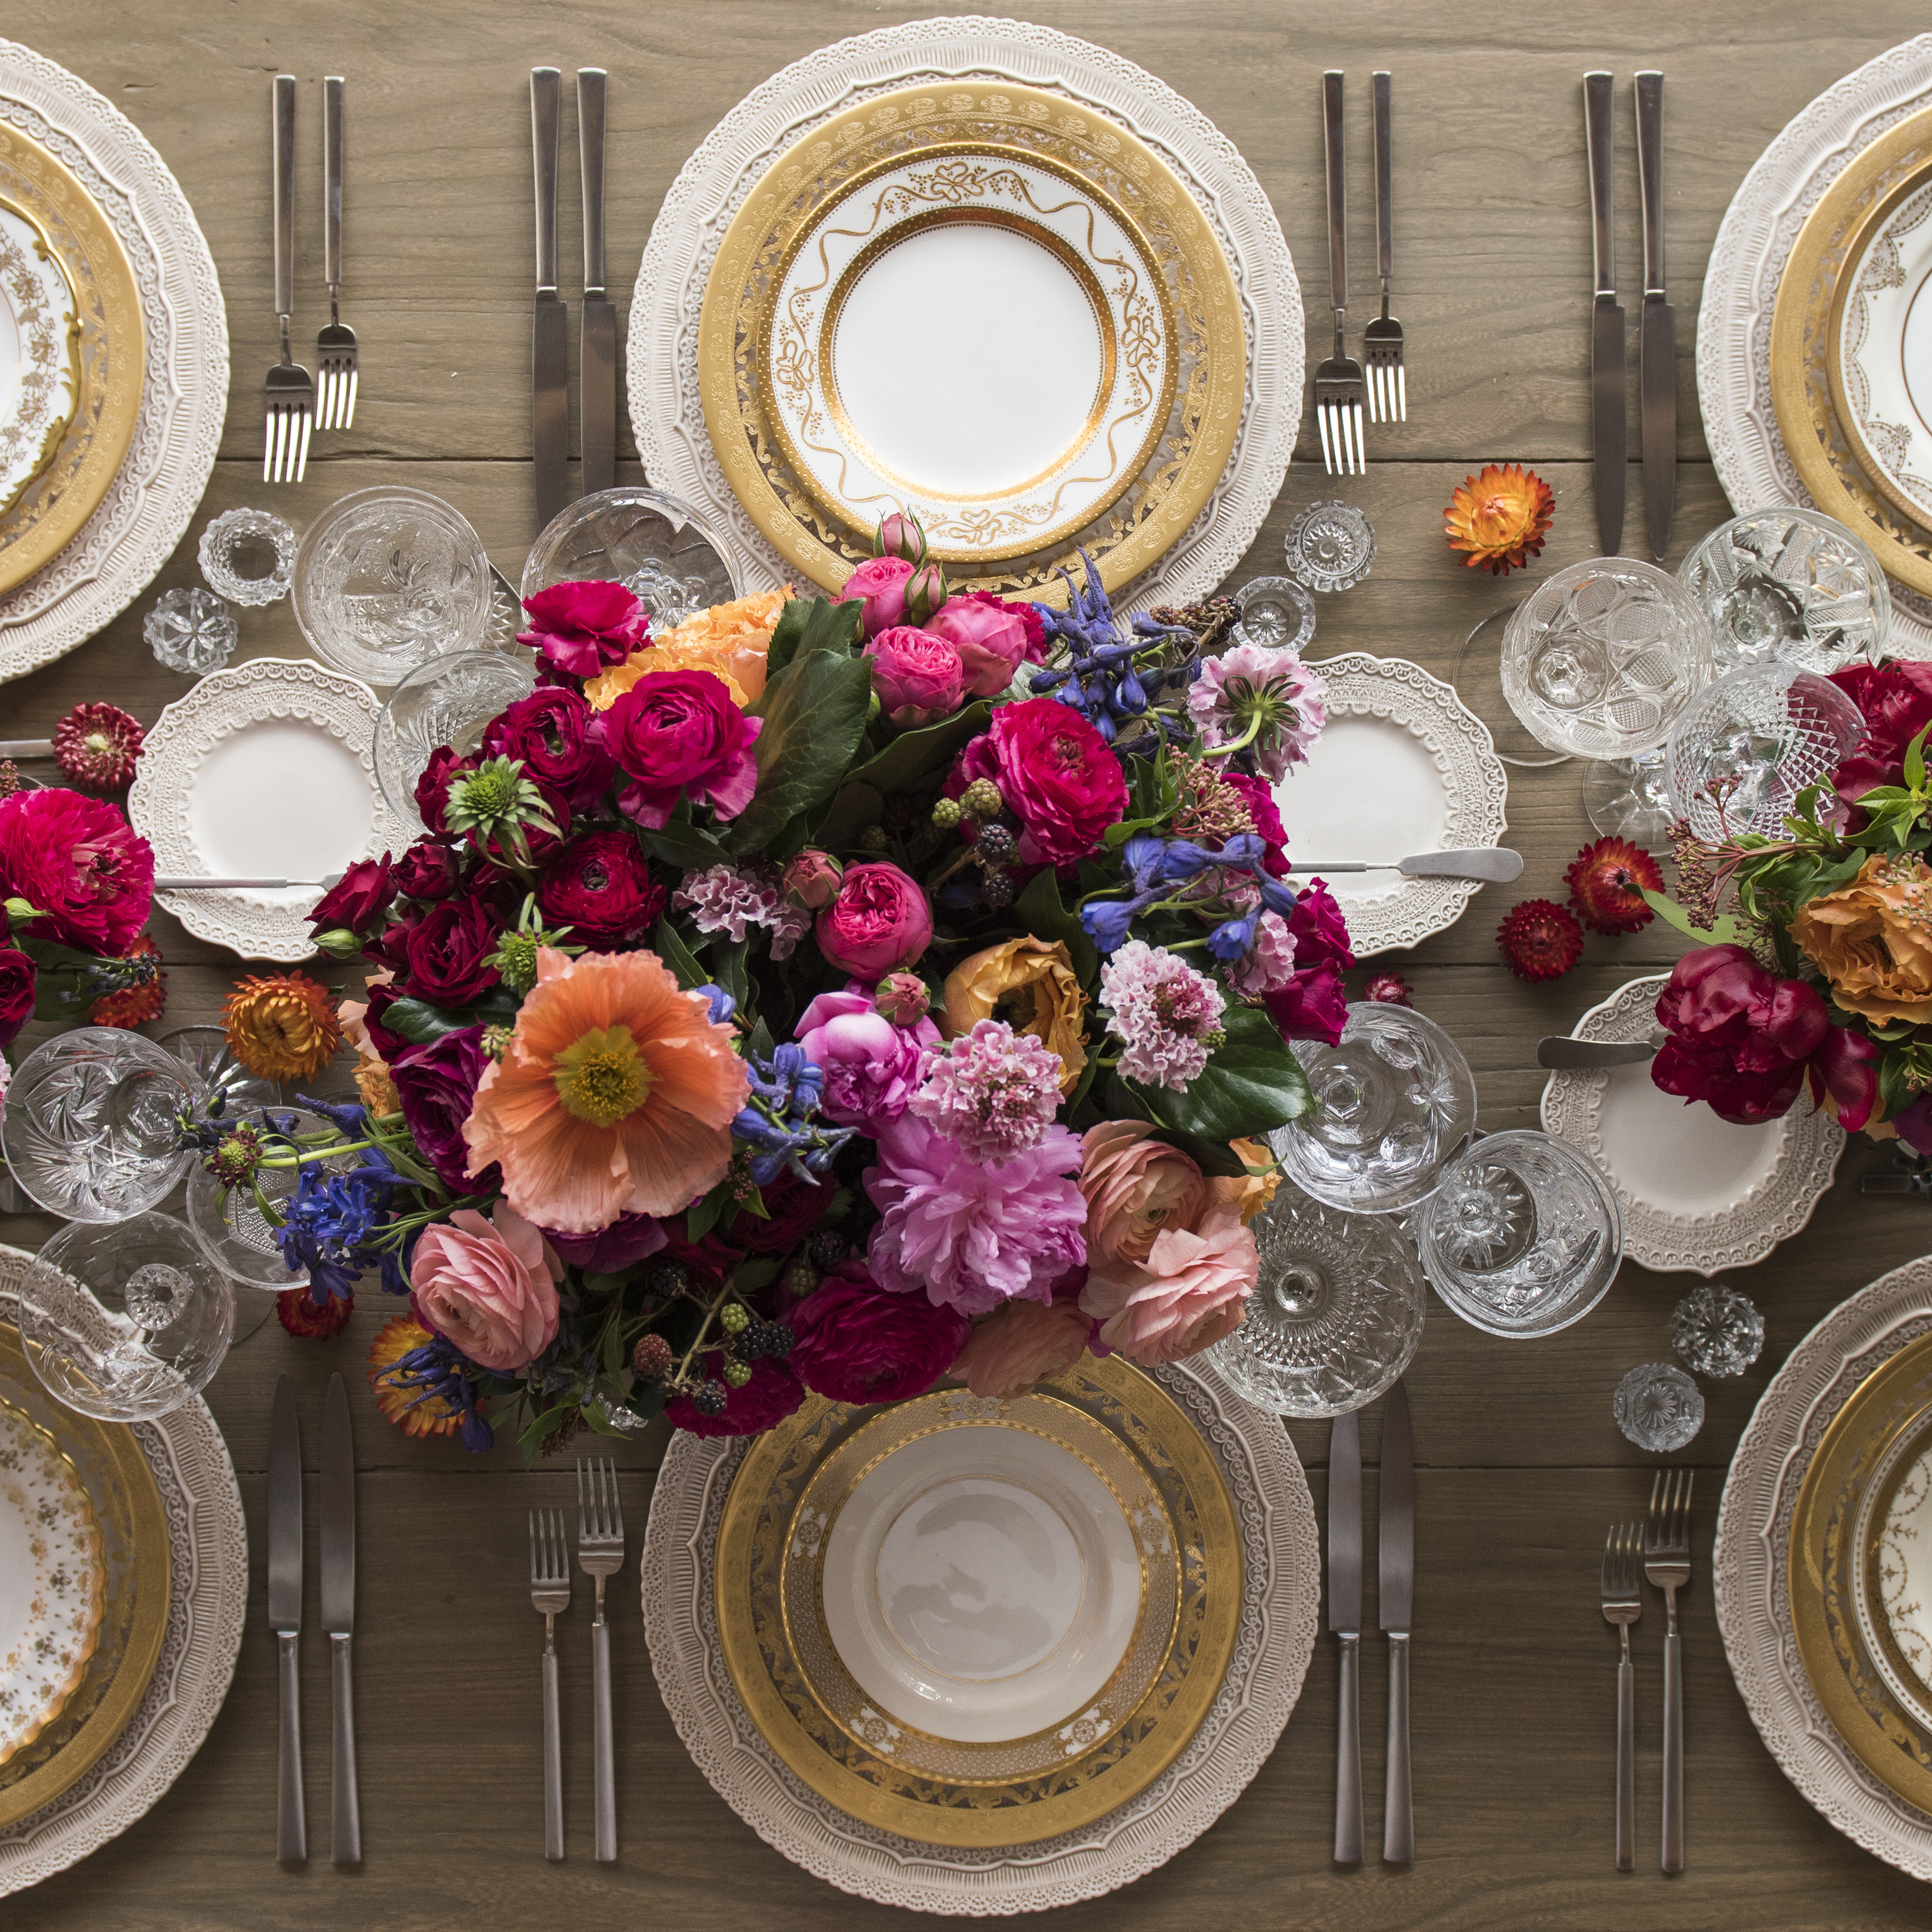 RENT: Lace Chargers in White + Versailles Glass Dinnerware in 24k Gold + Crown Gold Collection Vintage China + Axel Flatware in Matte Silver + Vintage Cut Crystal Goblets + Early American Pressed Glass Goblets + Antique Crystal Salt Cellars